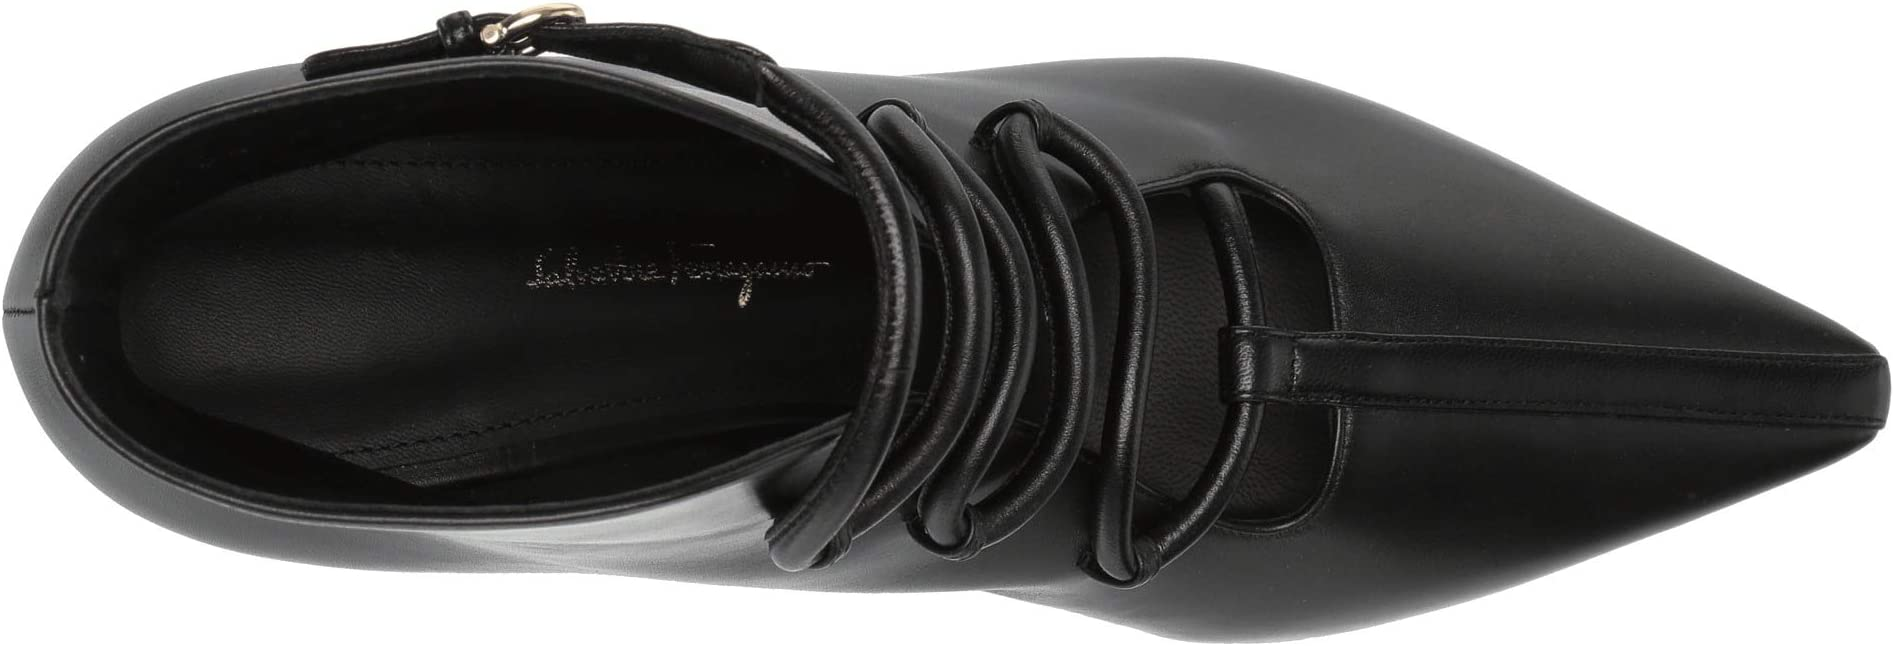 Salvatore Ferragamo Ciconia 70 | Women's shoes | 2020 Newest